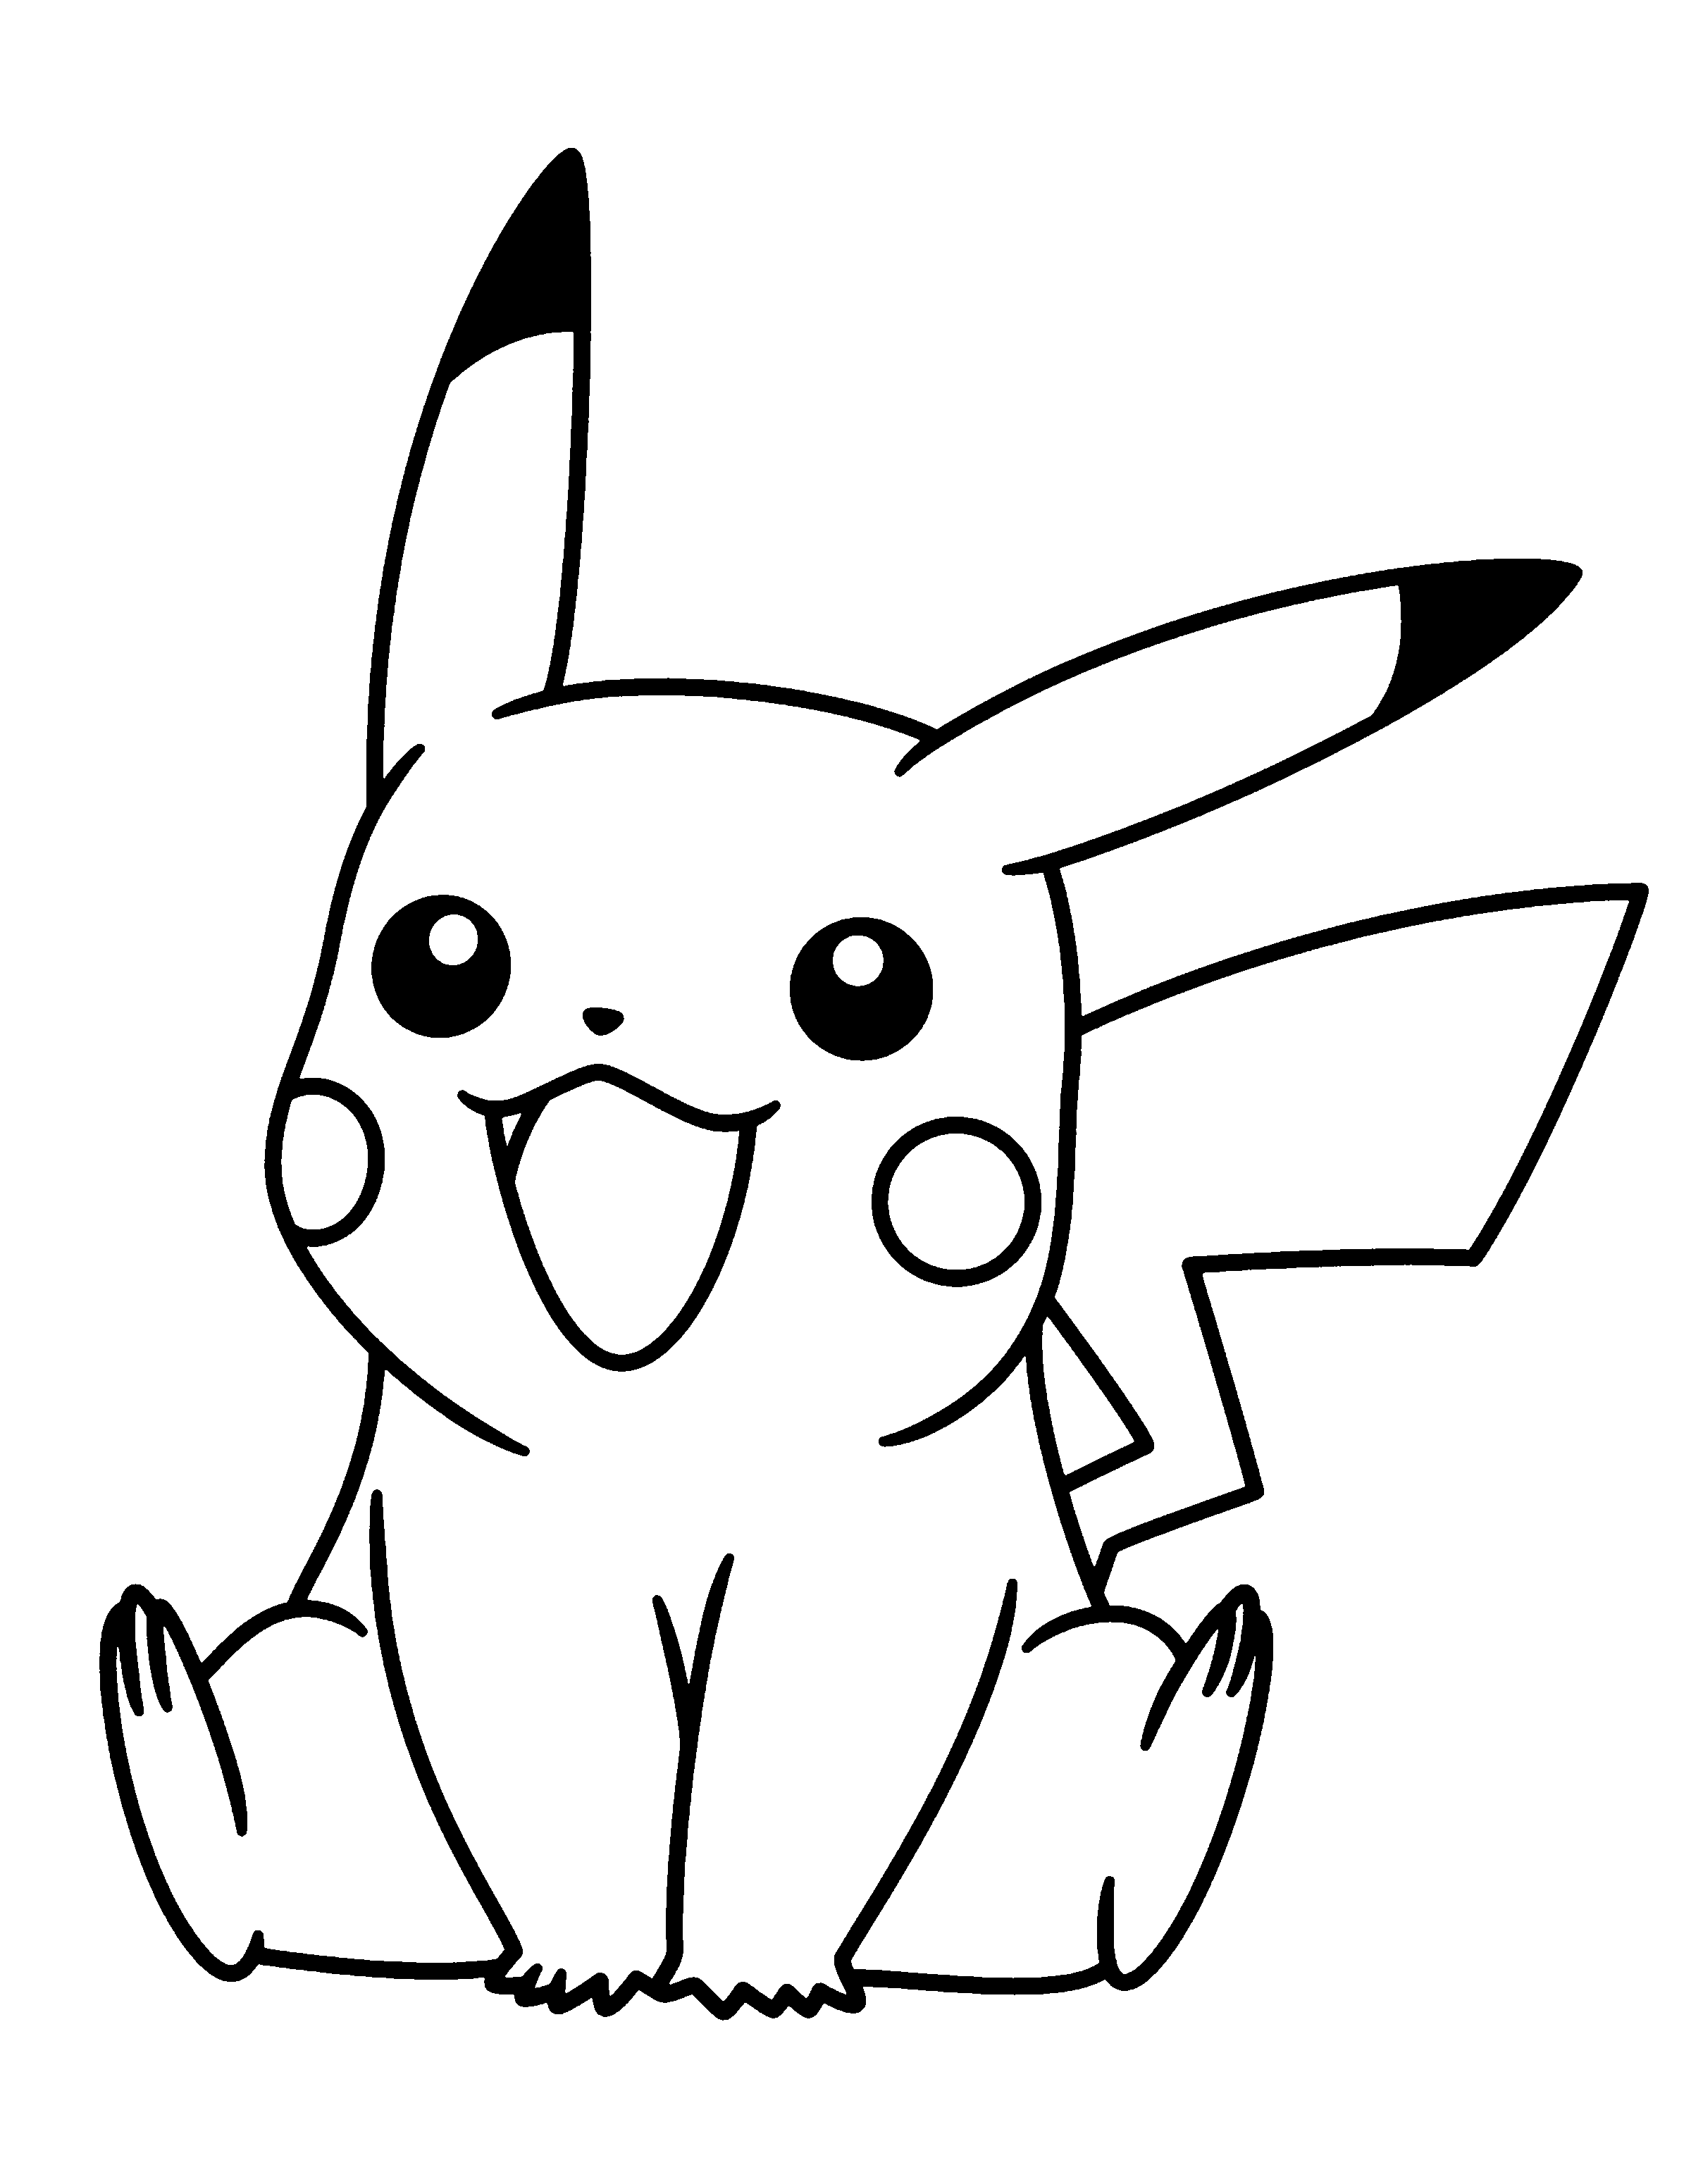 pokemon coloring pages Pokemon coloring, Pikachu